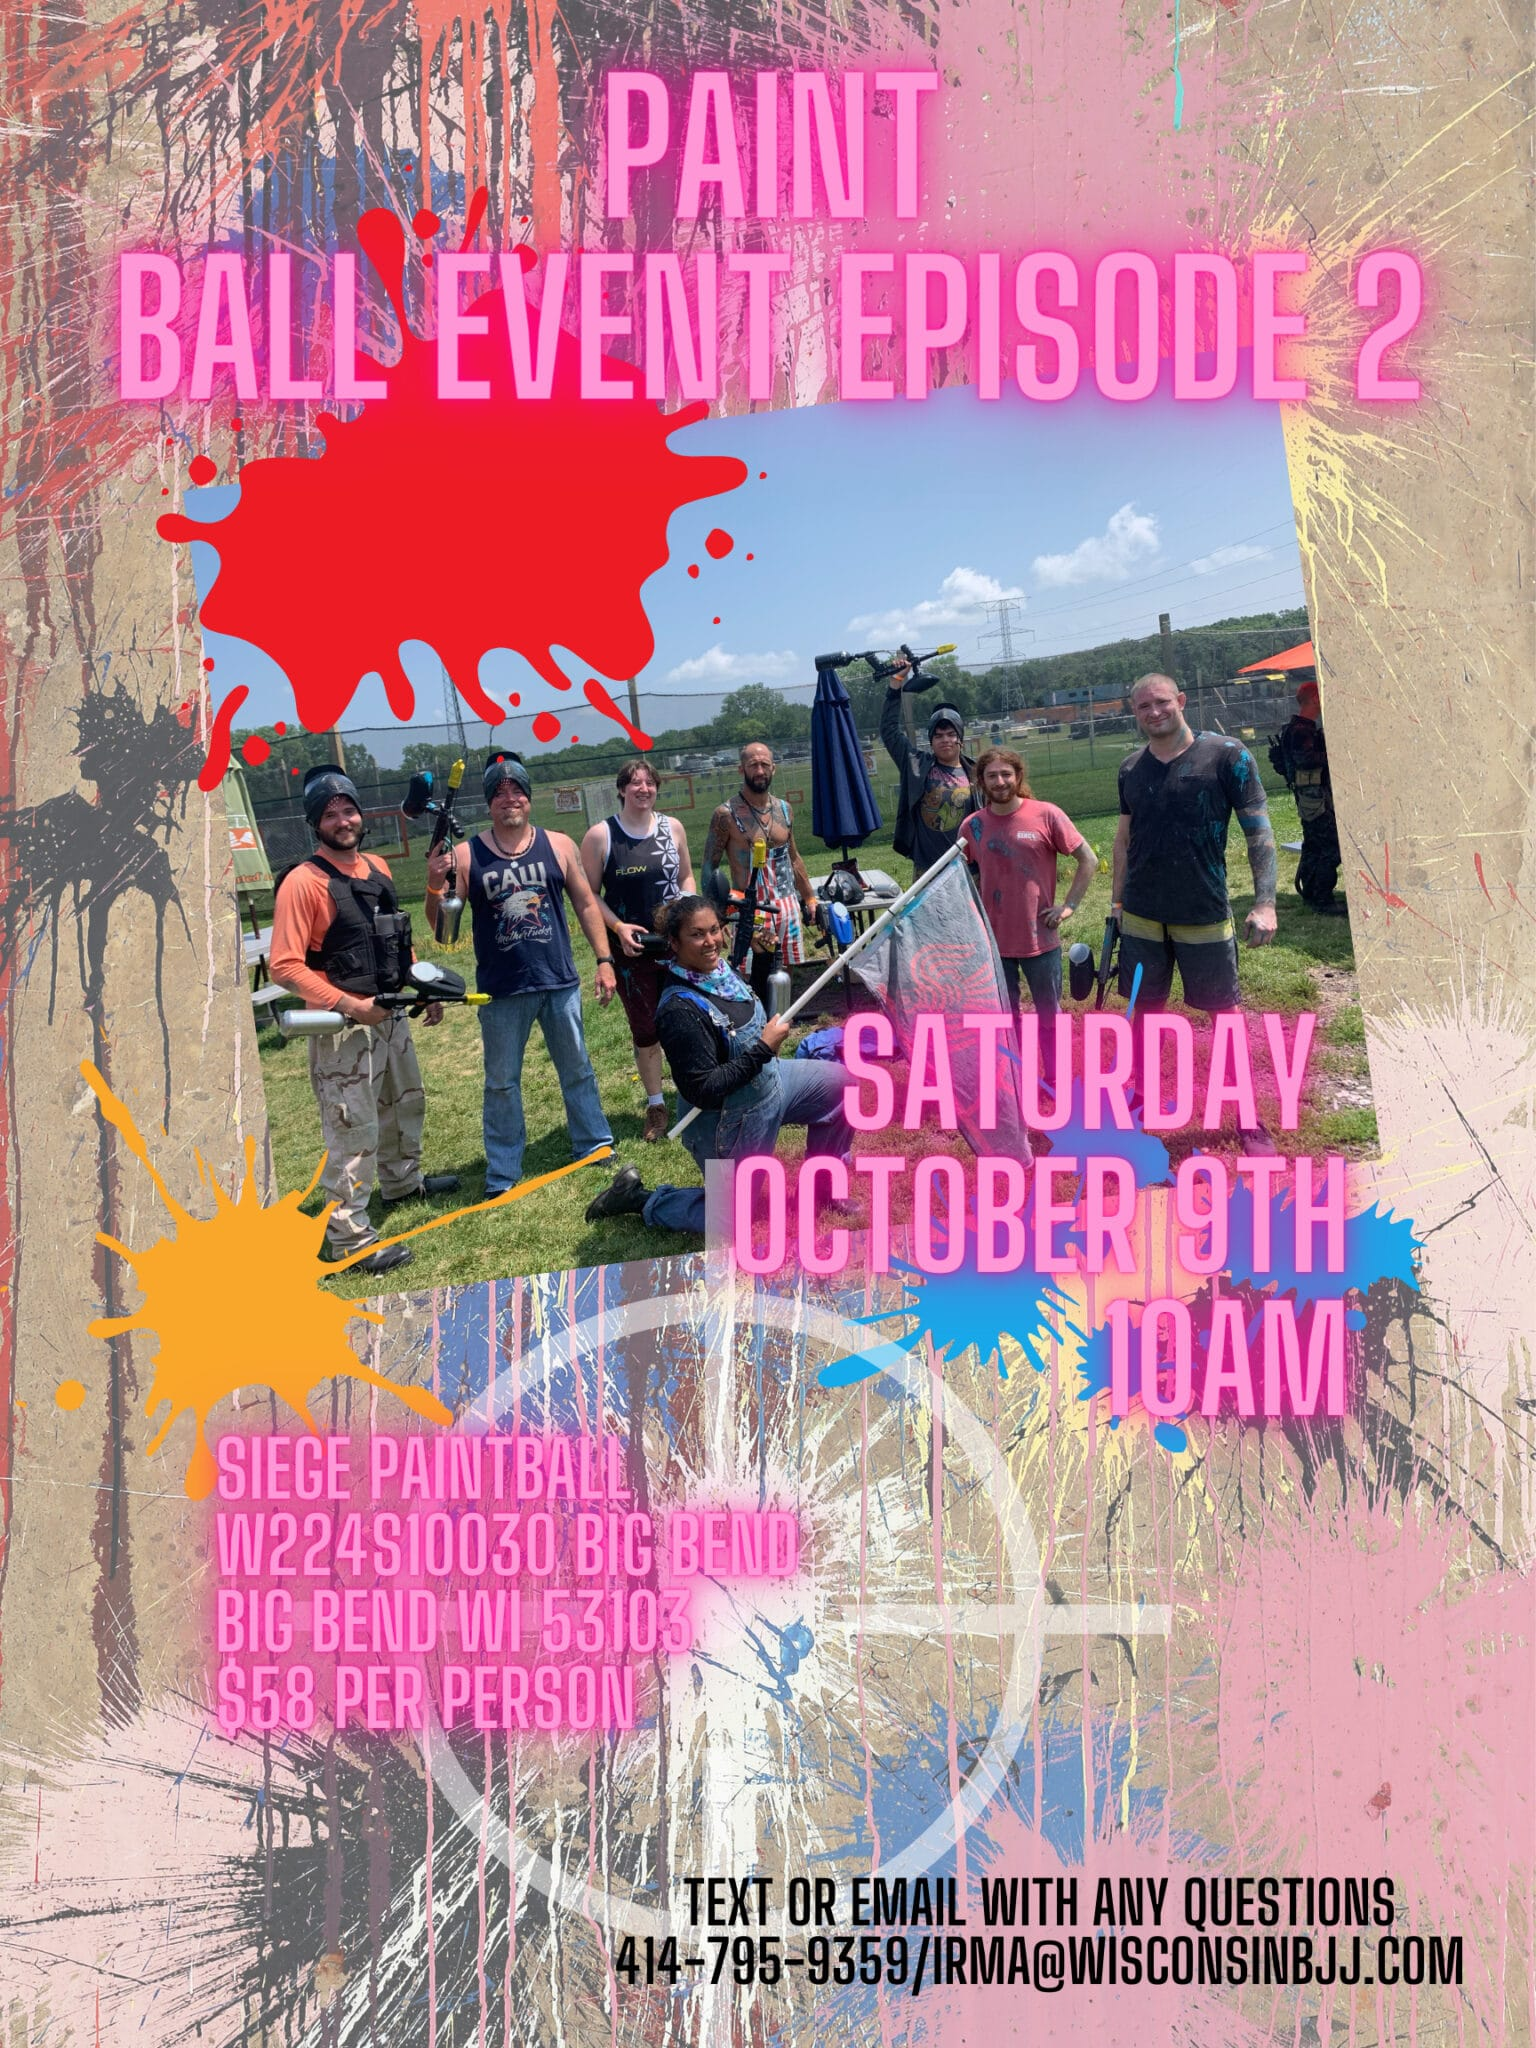 Neutral Ground Paintball Event: Episode 2